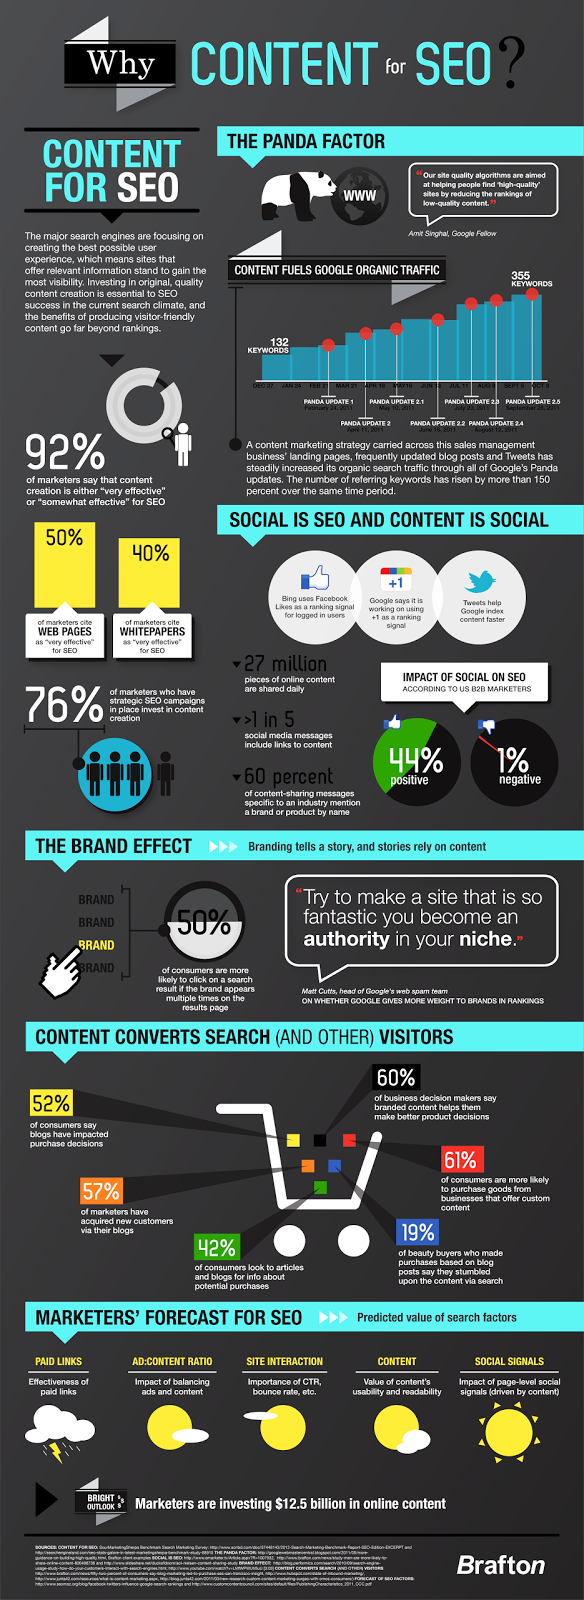 View Brafton's Infographic: Why Content for SEO?